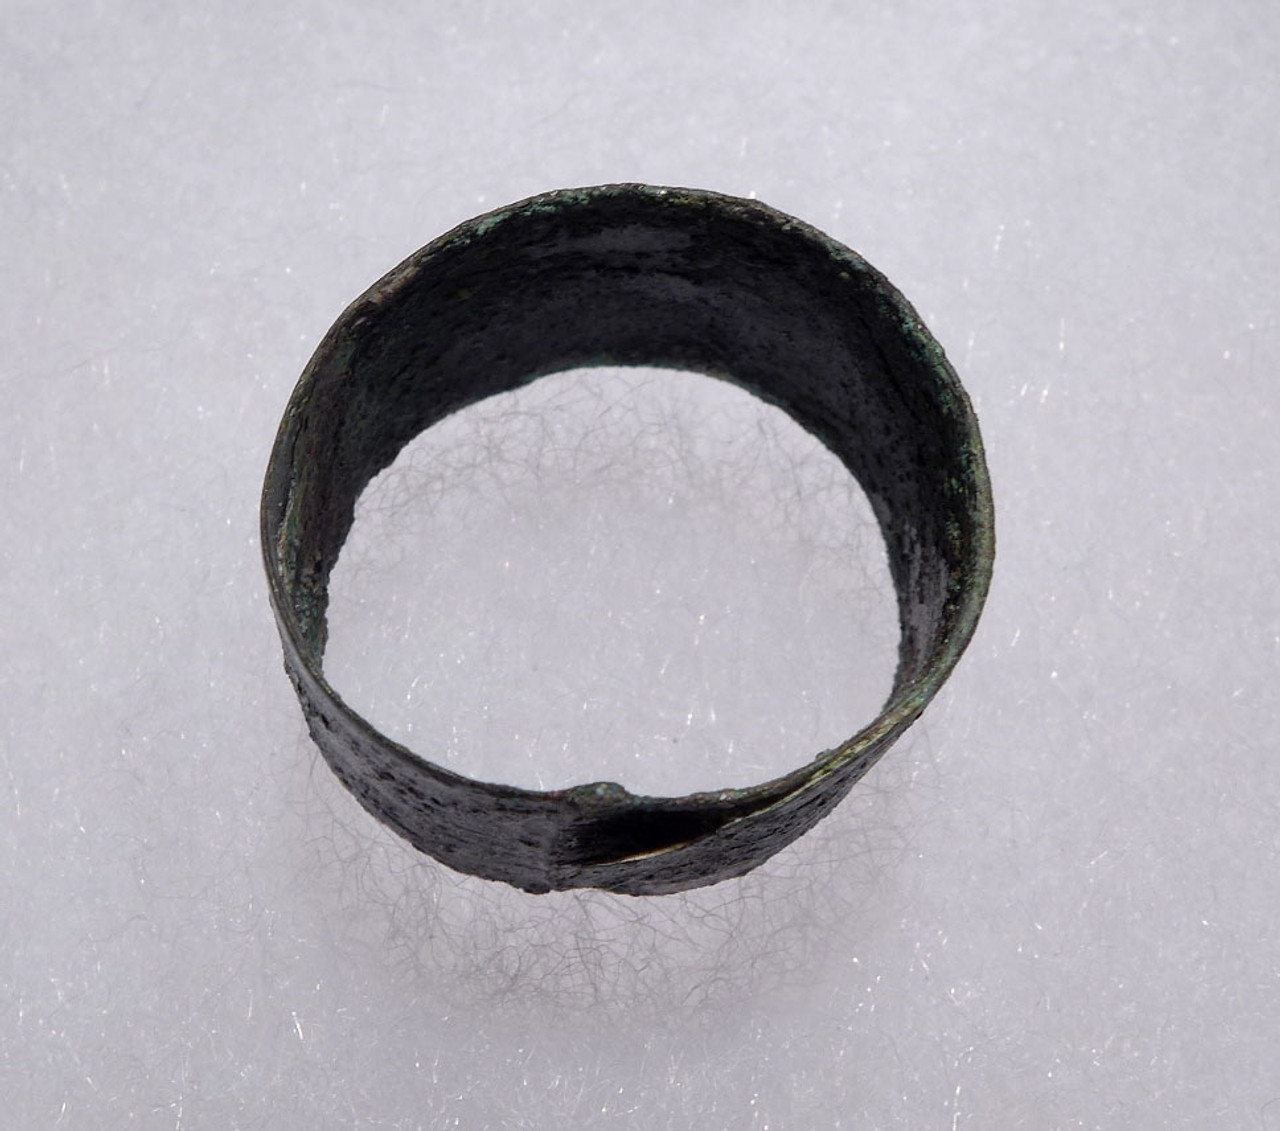 RARE ENGRAVED SHEET BRONZE FINGER RING FROM LURISTAN OF THE ANCIENT NEAR EAST  *LUR151